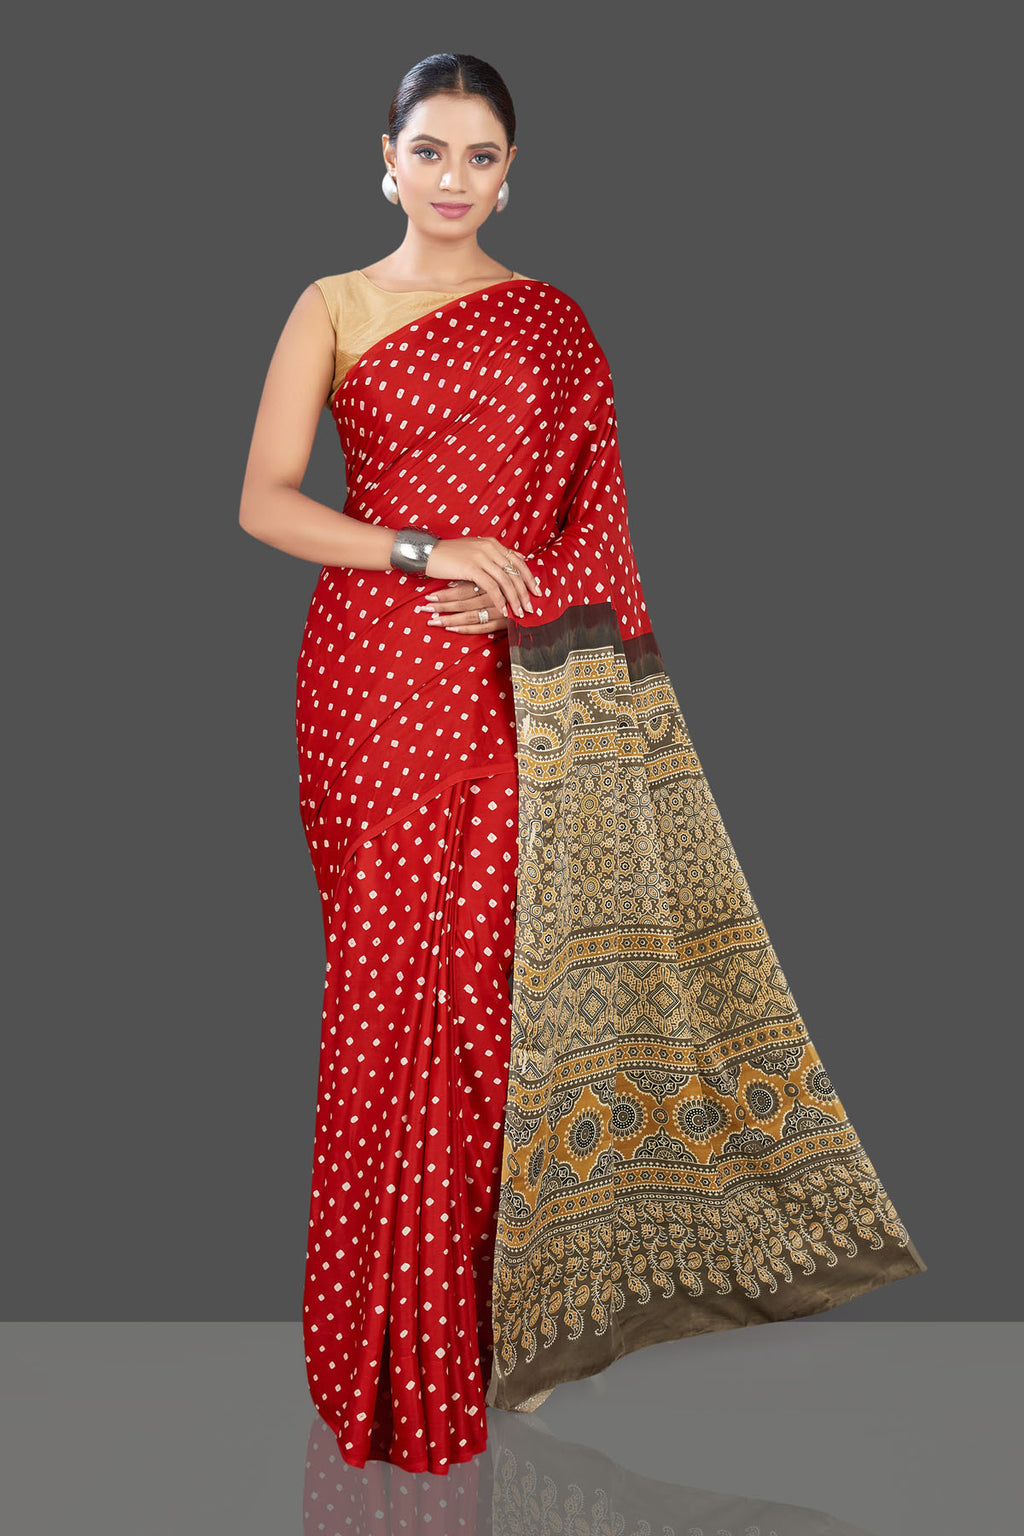 Shop beautiful red Bandhej print modal silk sari online in USA with Ajrakh pallu. Look beautiful at weddings and parties with exquisite designer sarees, handwoven saris, pure silk sarees, embroidered sarees, printed sarees from Pure Elegance Indian fashion boutique in USA.-full view